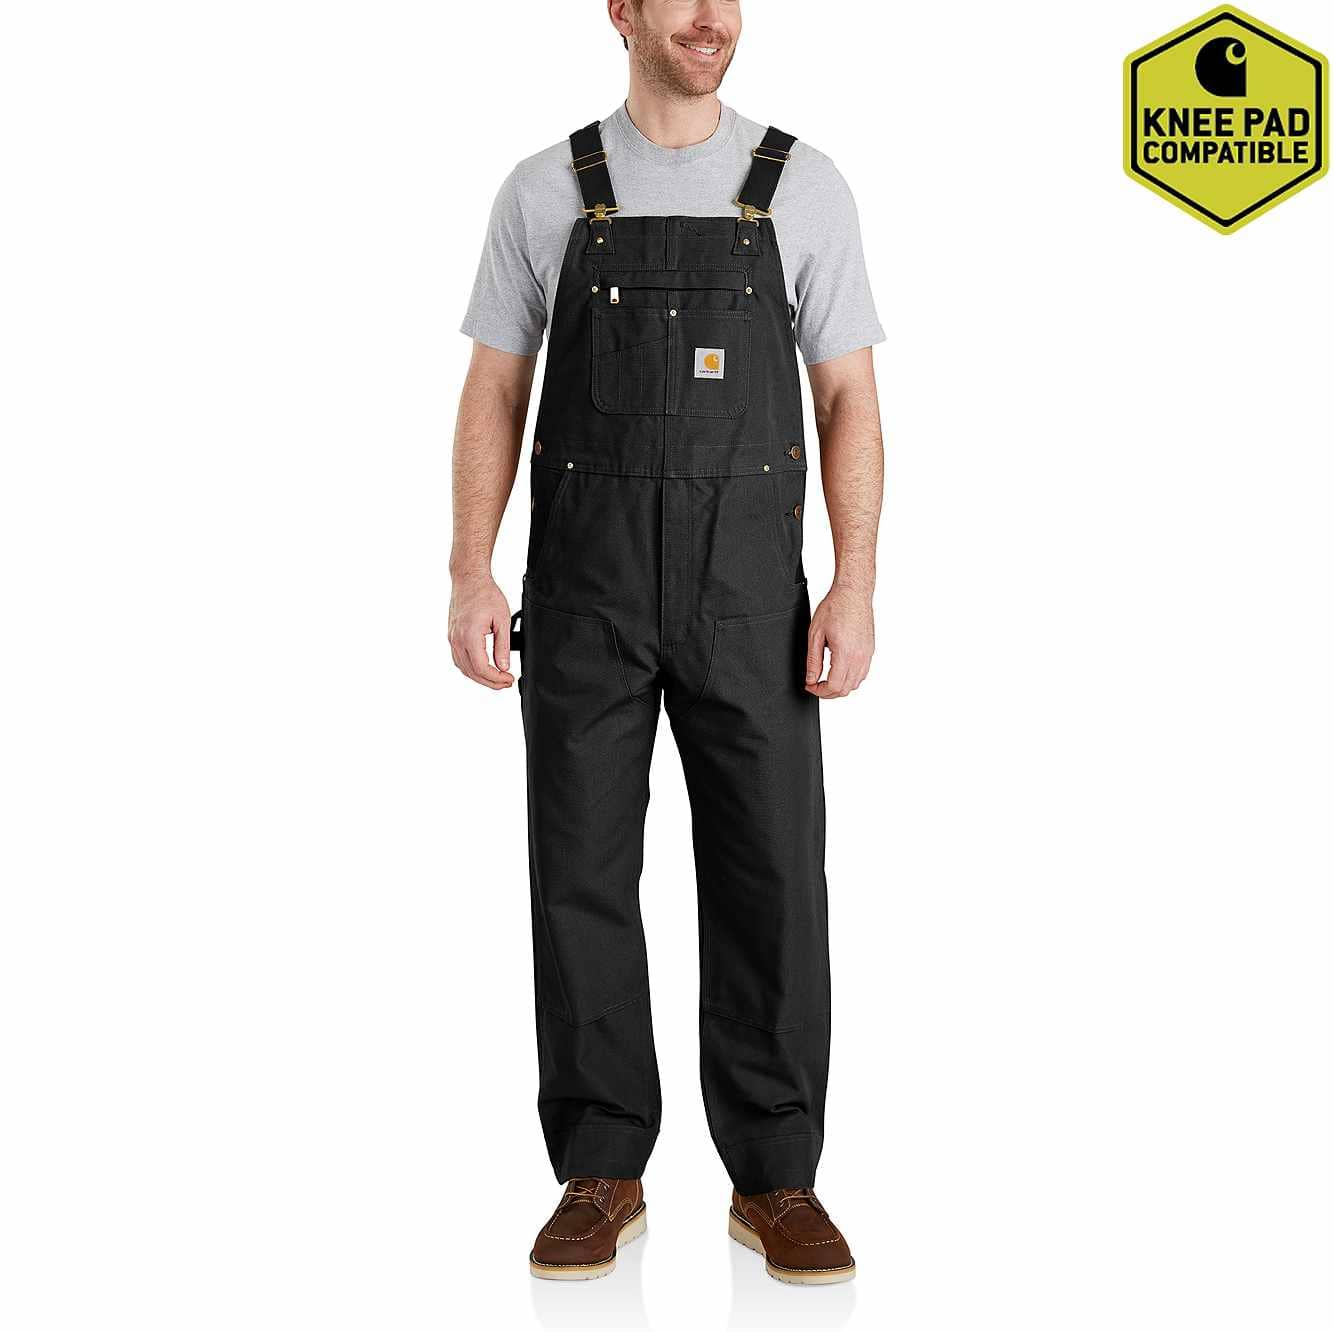 Picture of Duck Bib Overalls in Black